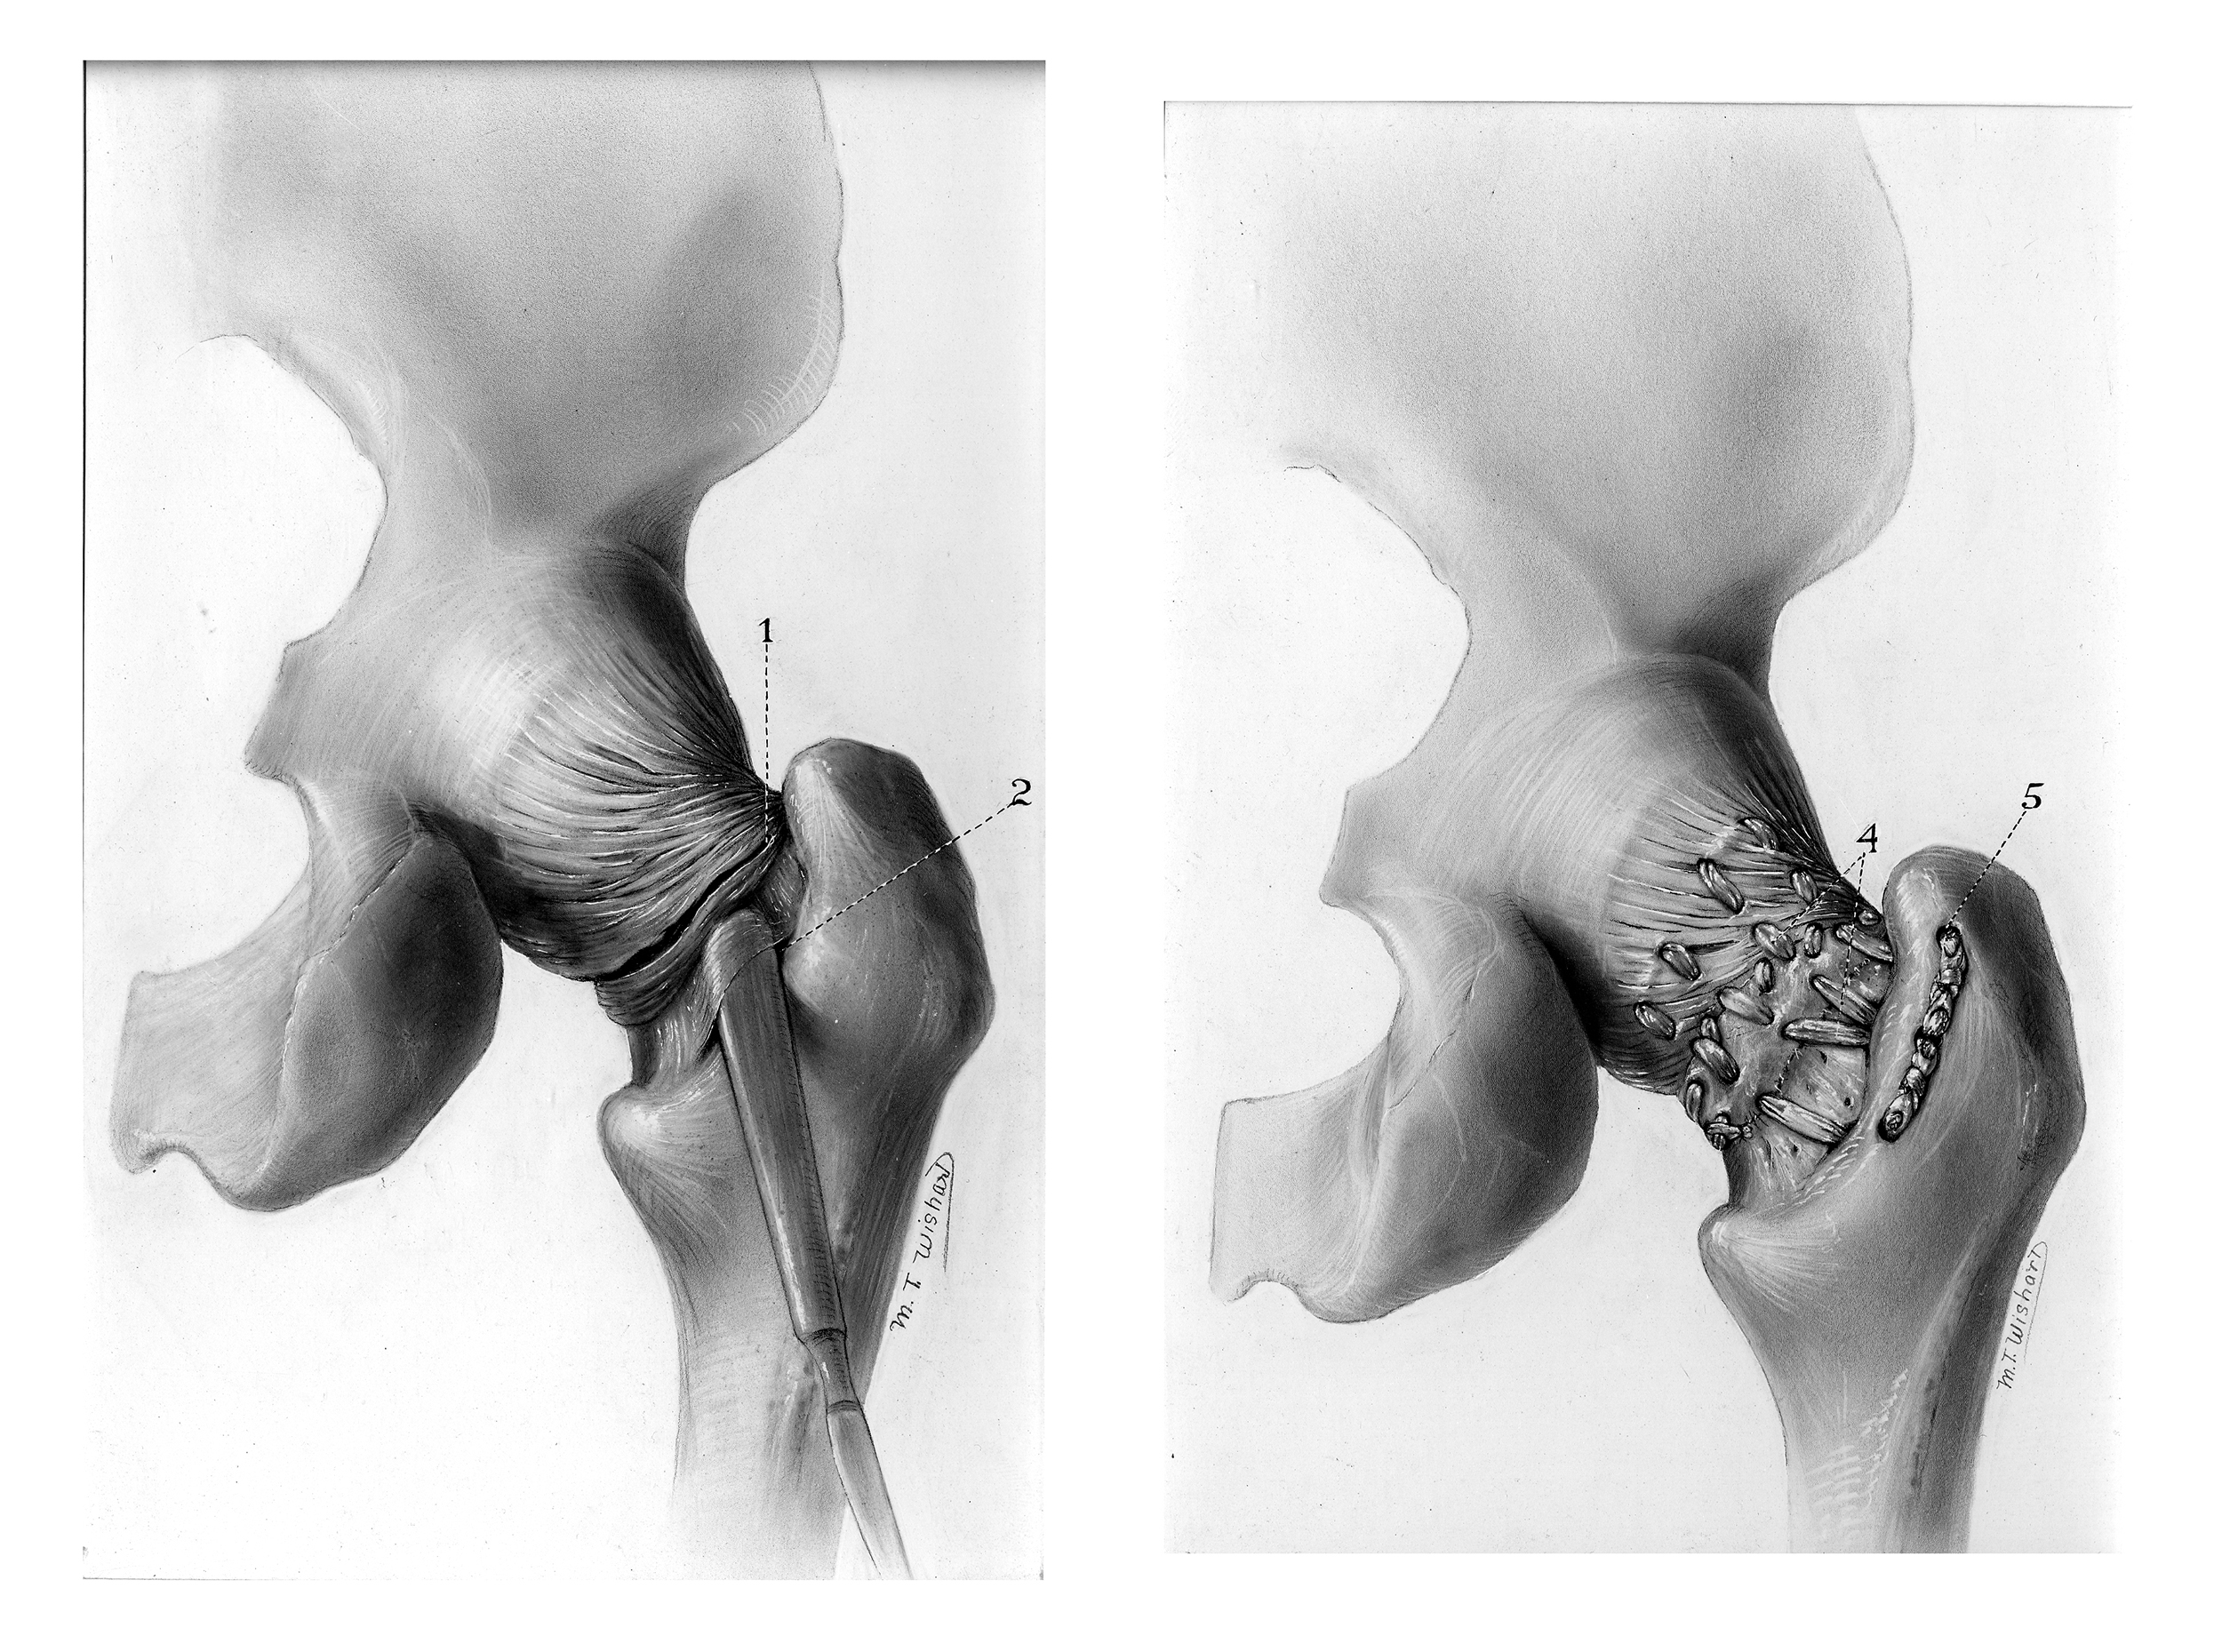 Living Sutures in Repair of Torn Hip Ligament